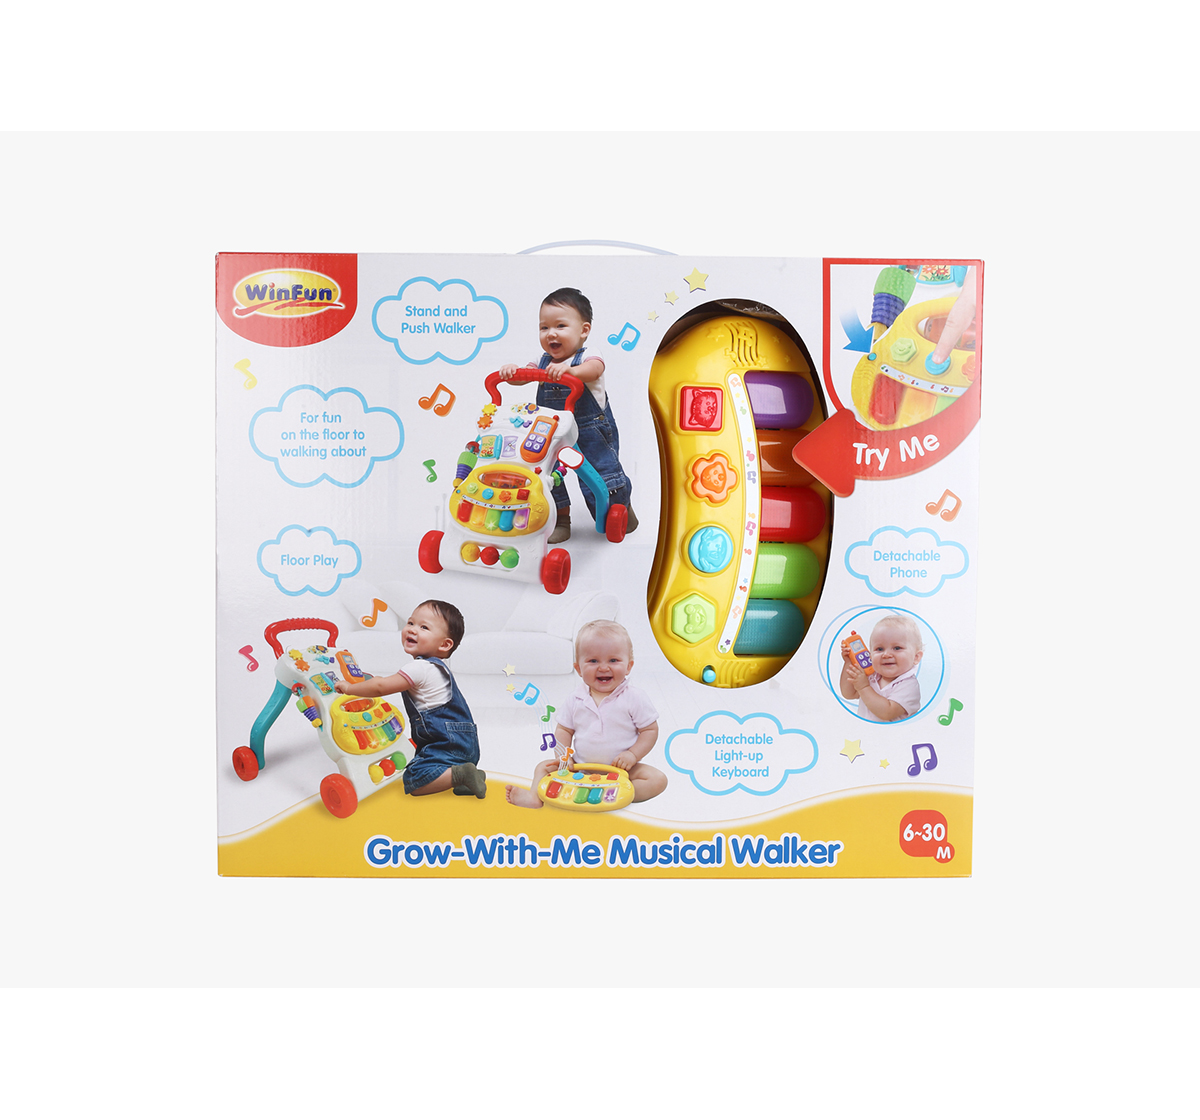 WinFun | Winfun Nl Grow-With-Memusical Walker Baby Gear for Kids age 0M+